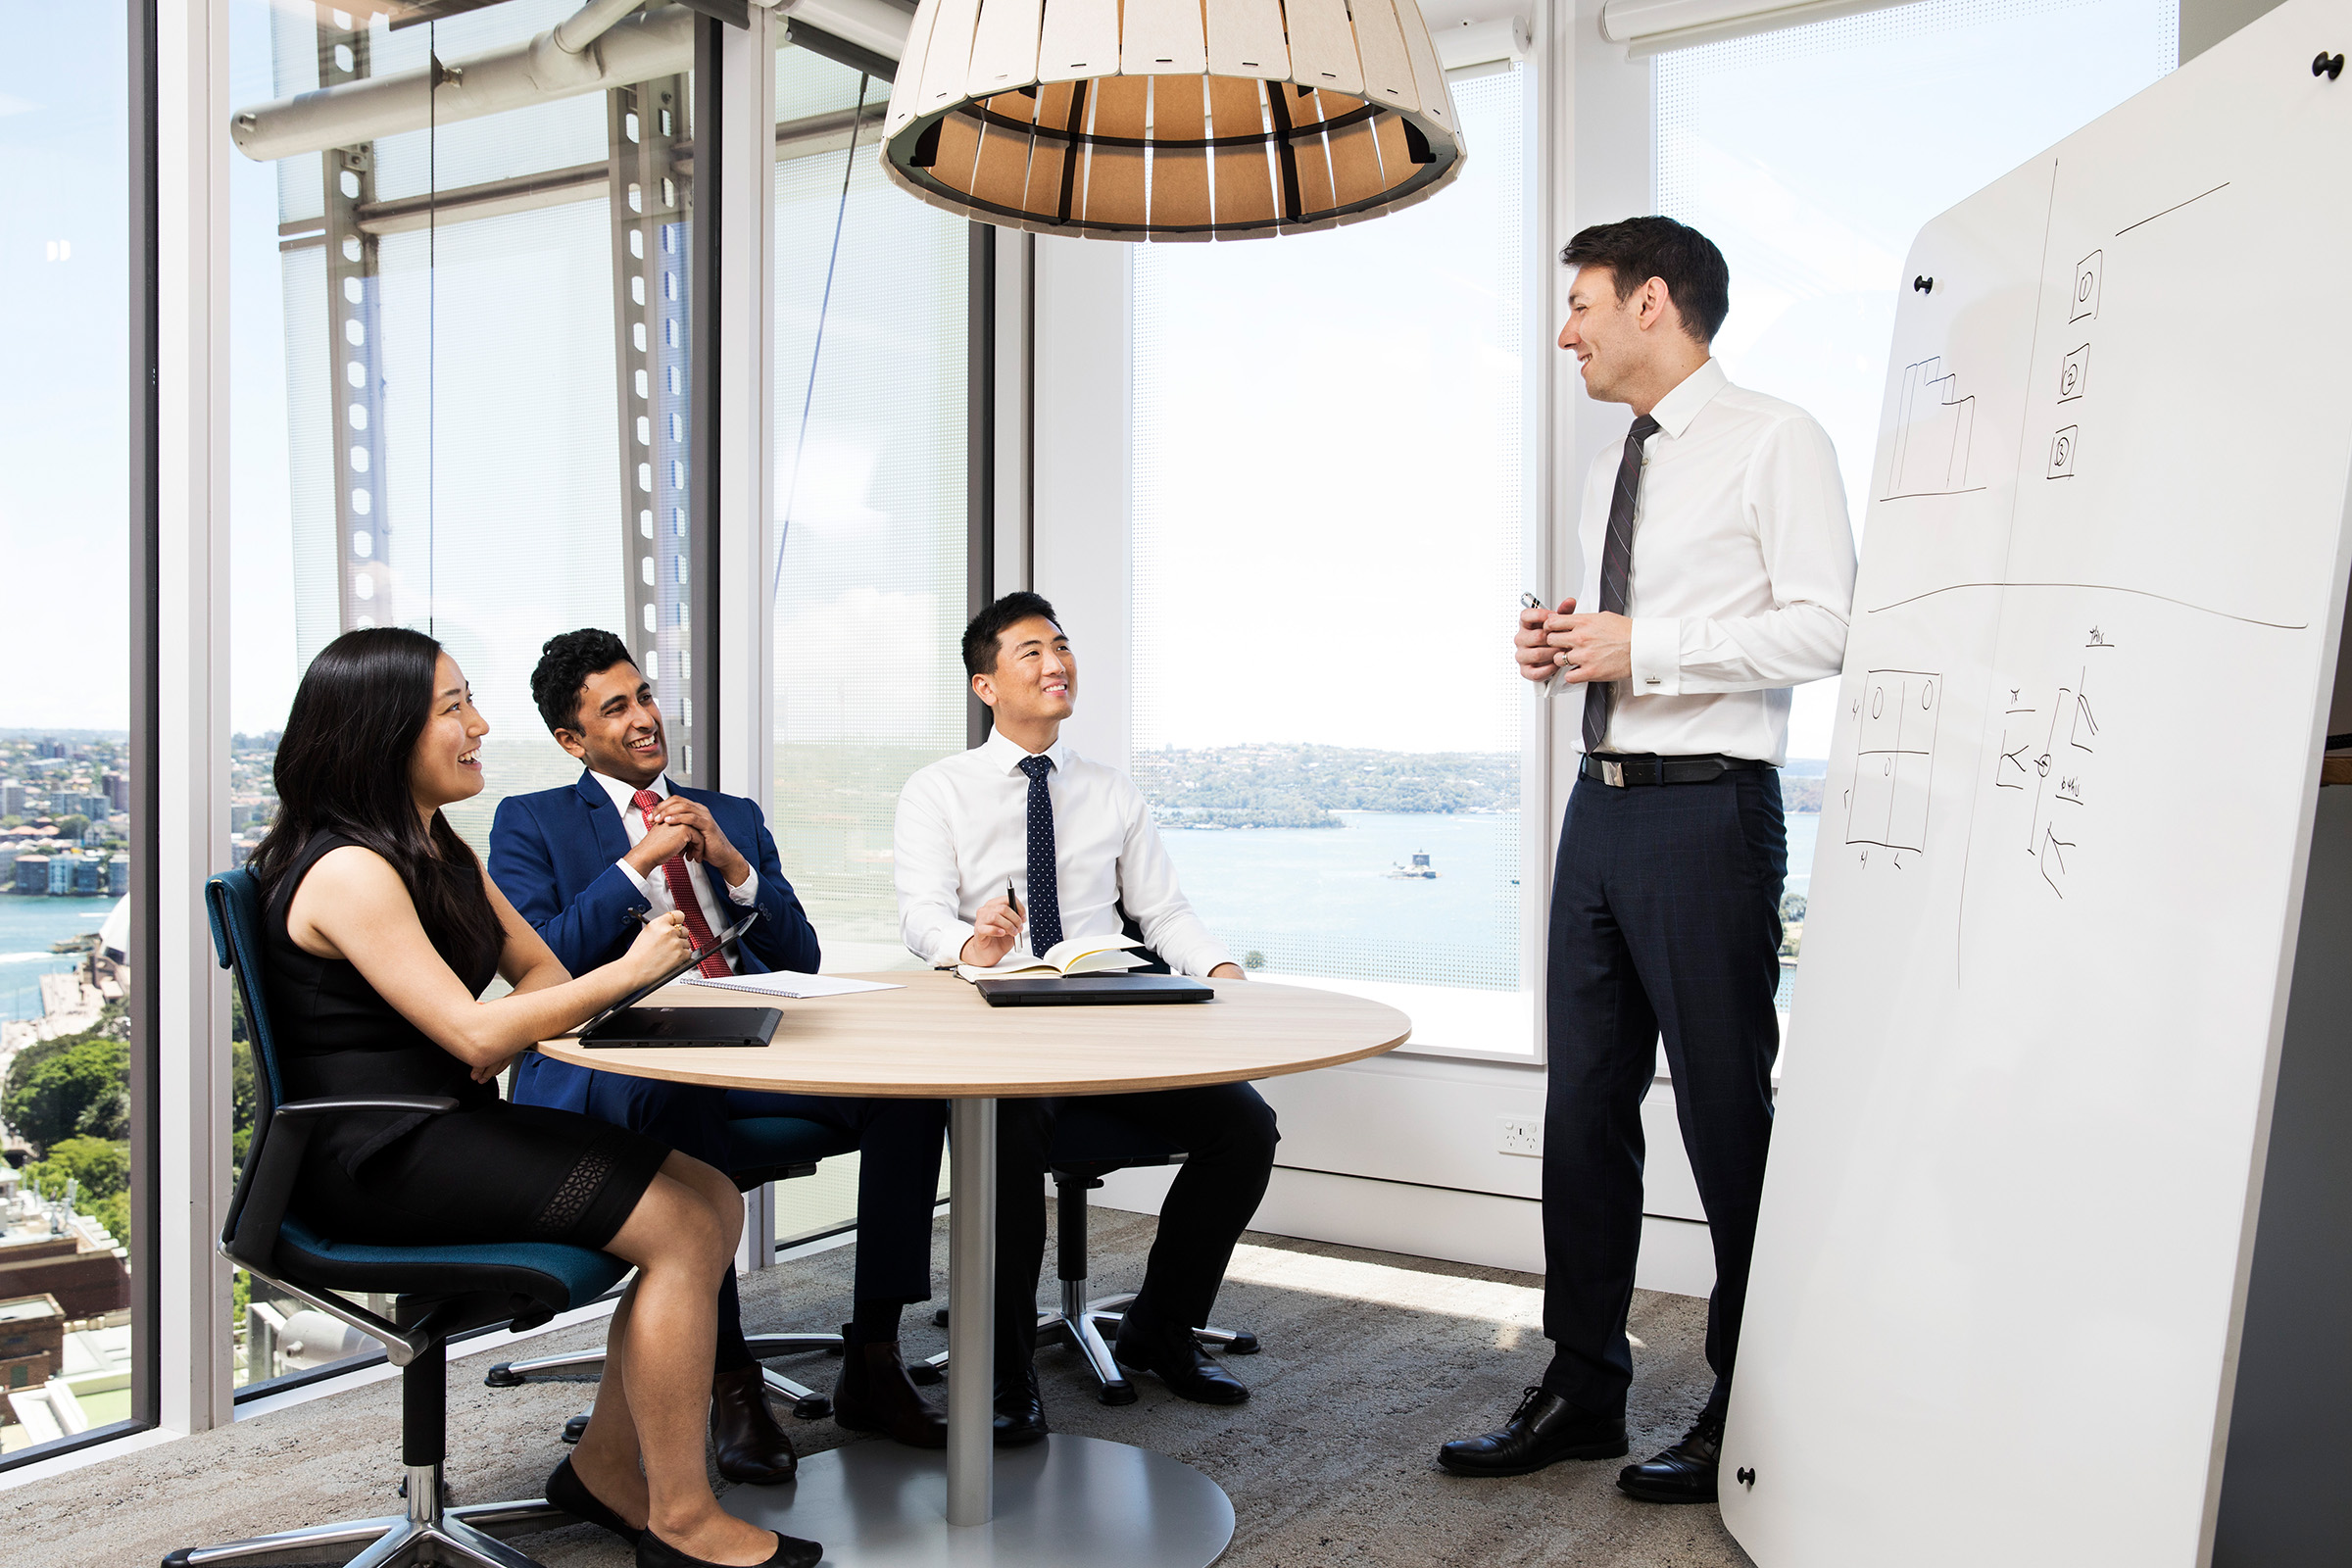 Corporate website working group photography 1 female 3 males seated and standing office harbour background